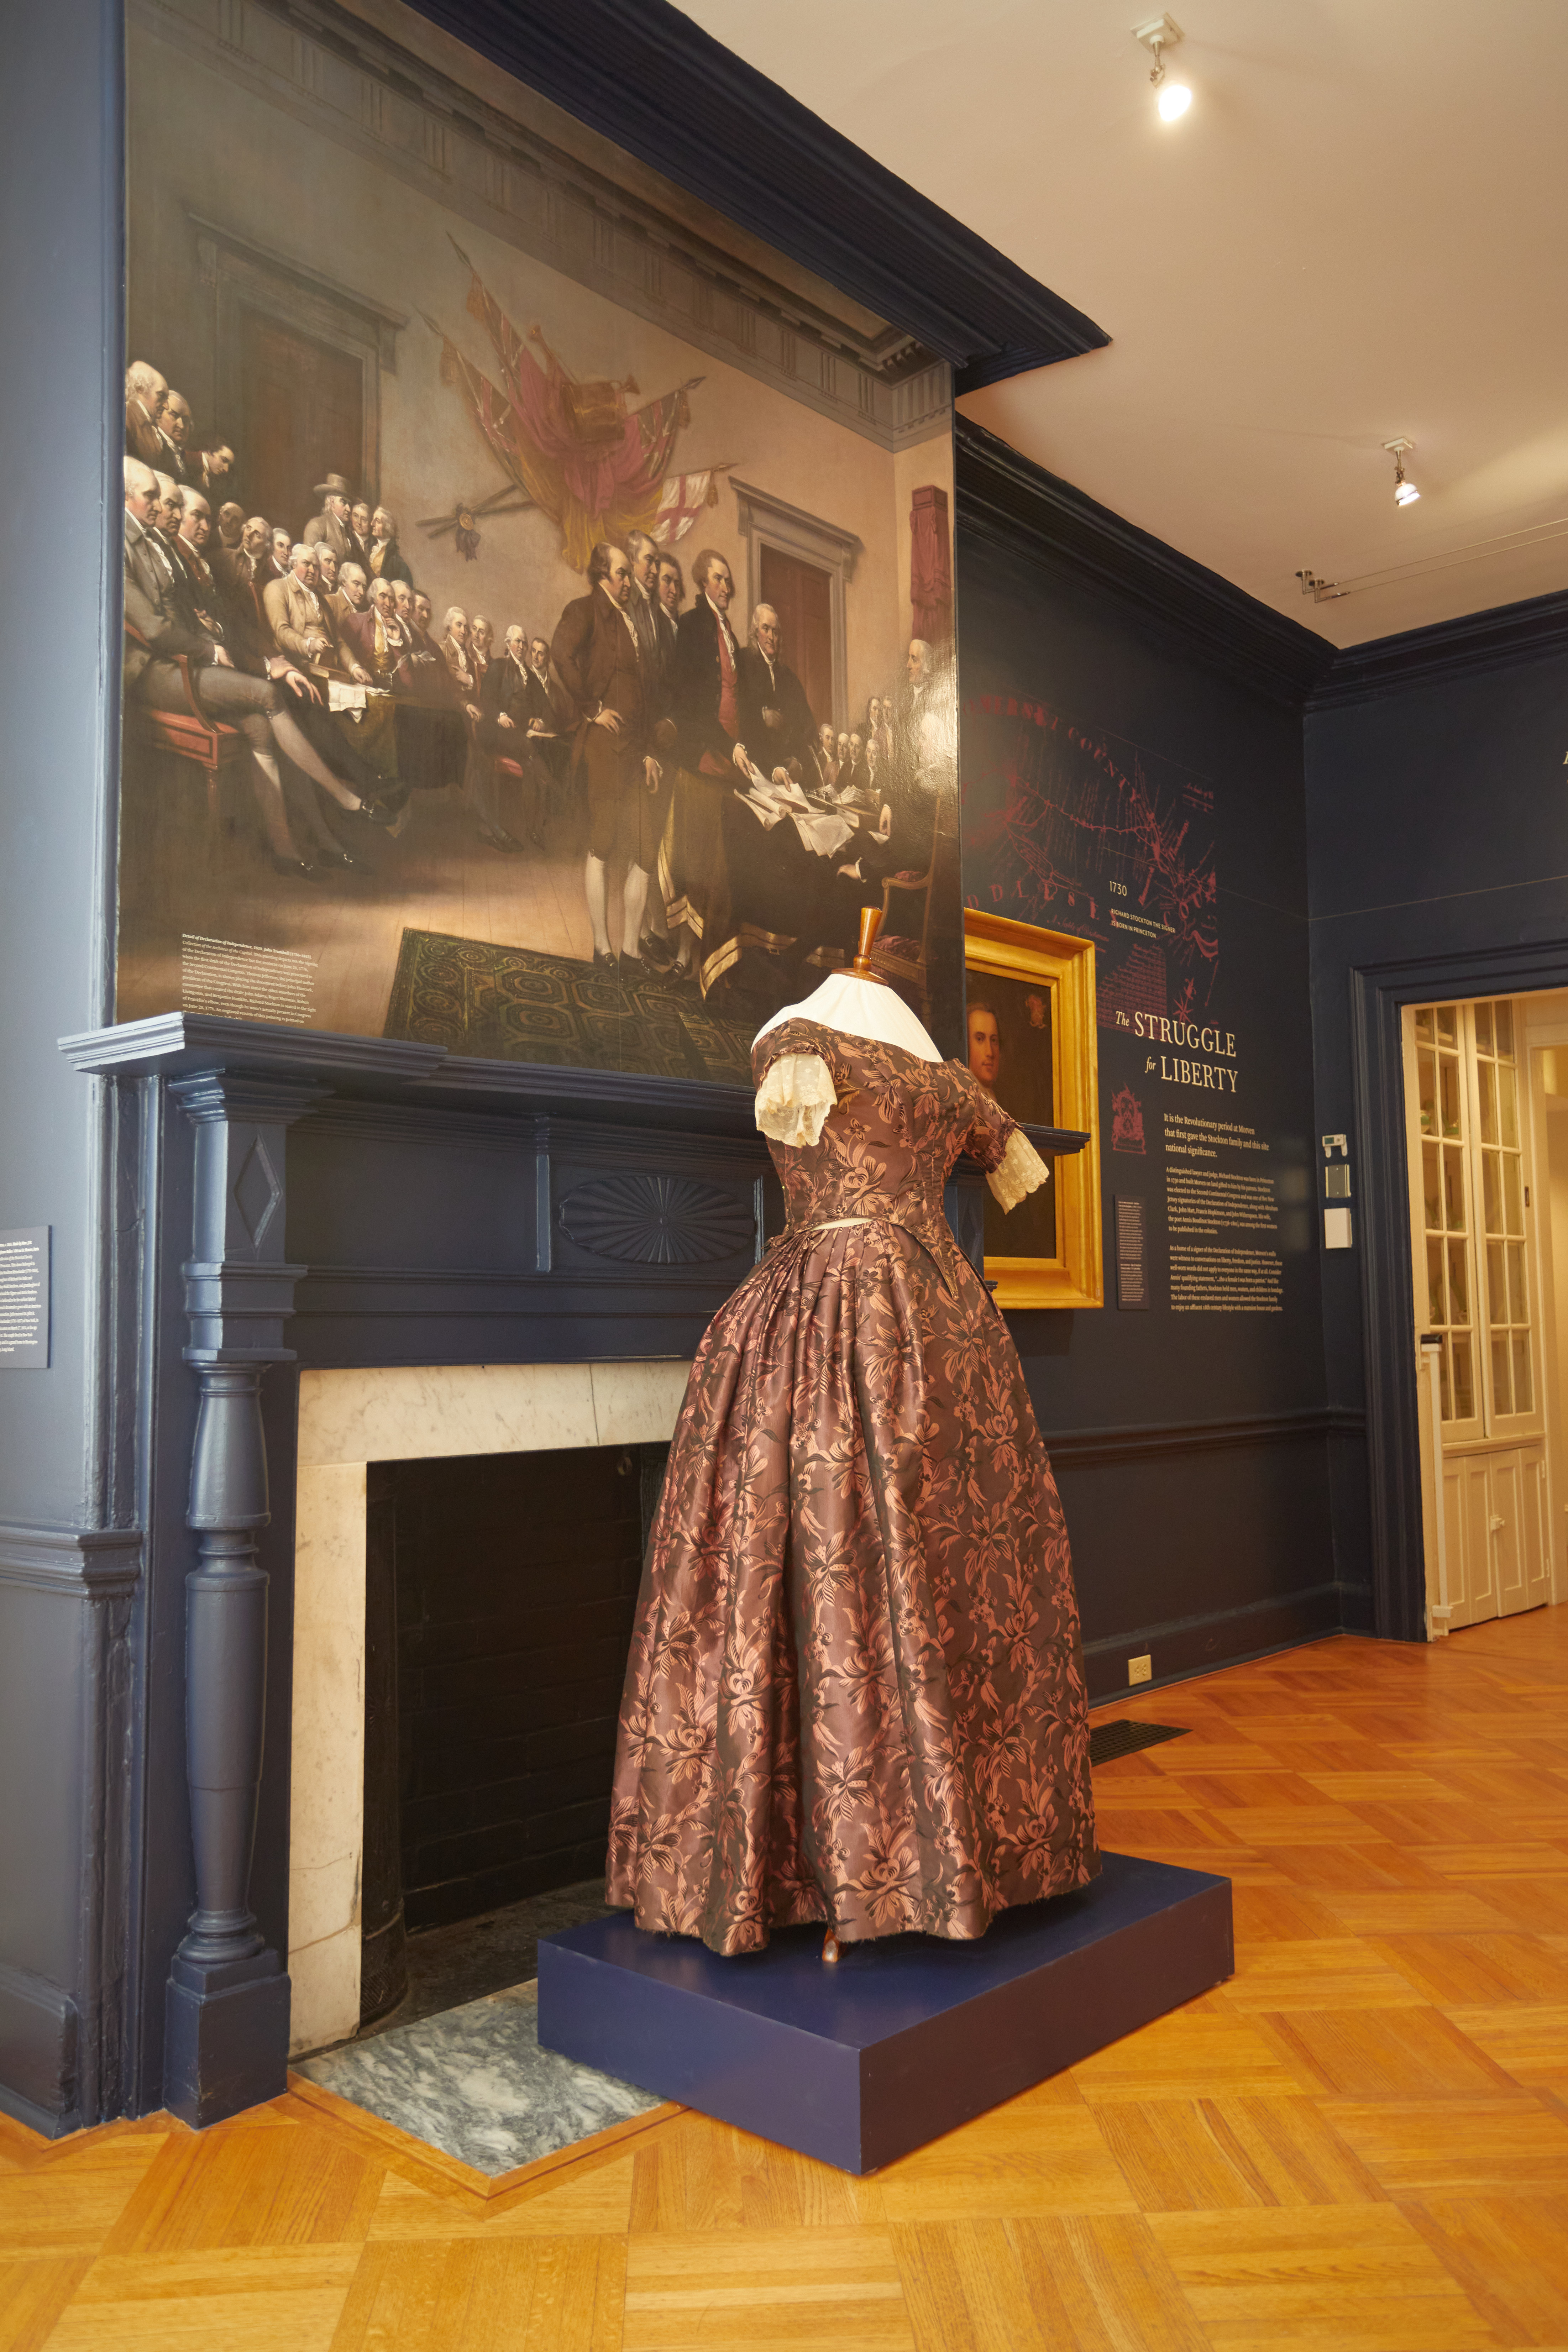 Room with woman's gown on display in front of mural of the signers of the Declaration of Independence.